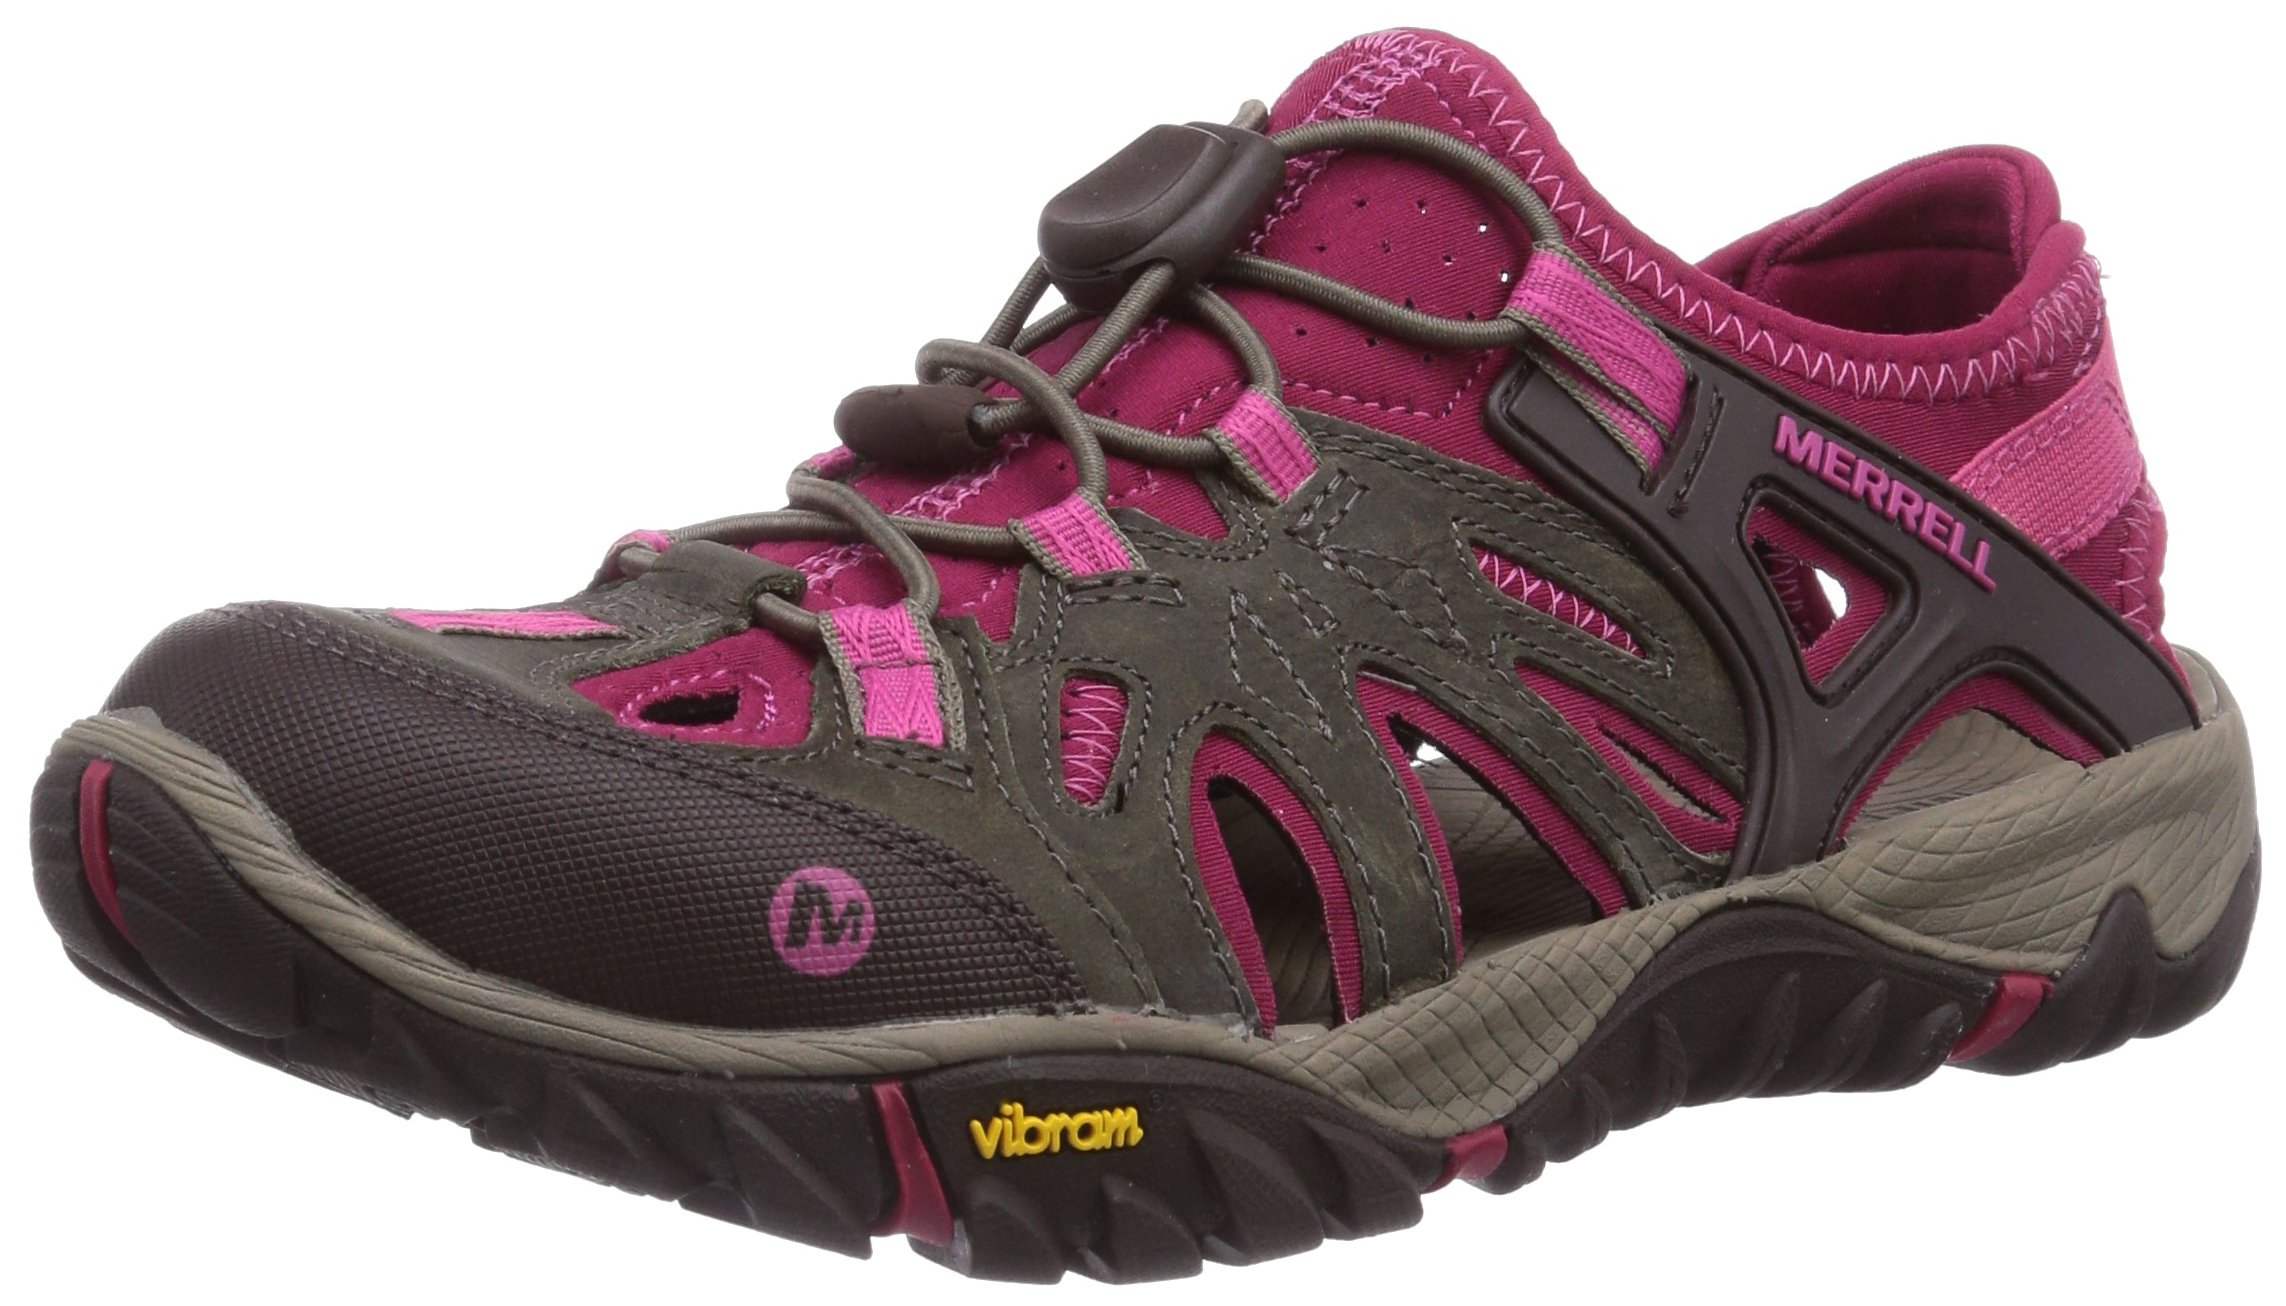 Merrell Women's All Out Blaze Sieve Water Shoe, Boulder/Fuchsia, 6.5 M US by Merrell